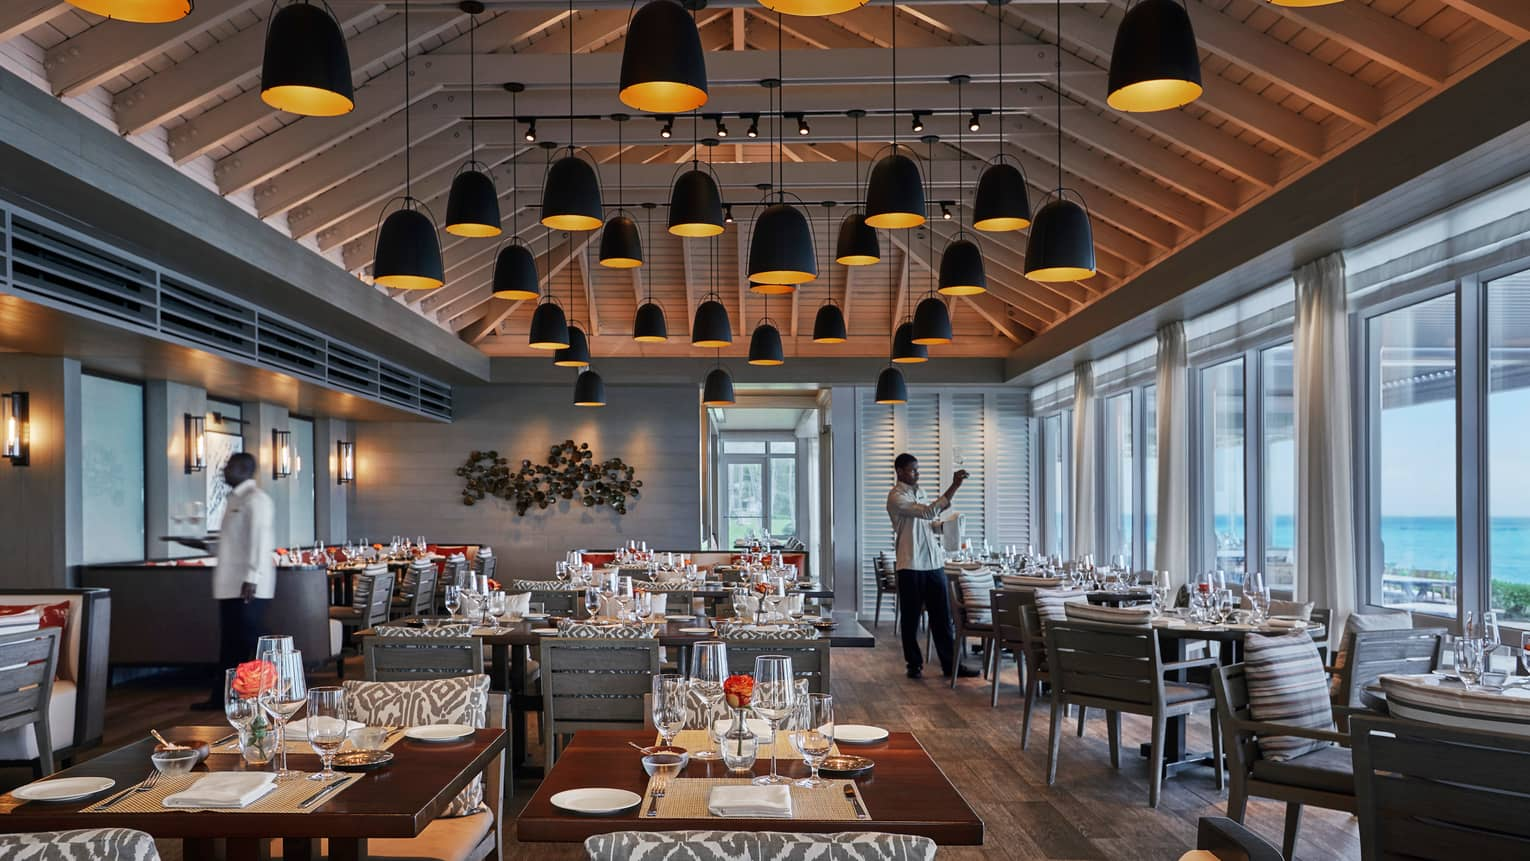 Servers set tables in spacious Dune dining room with soaring ceilings, lights hanging from beams